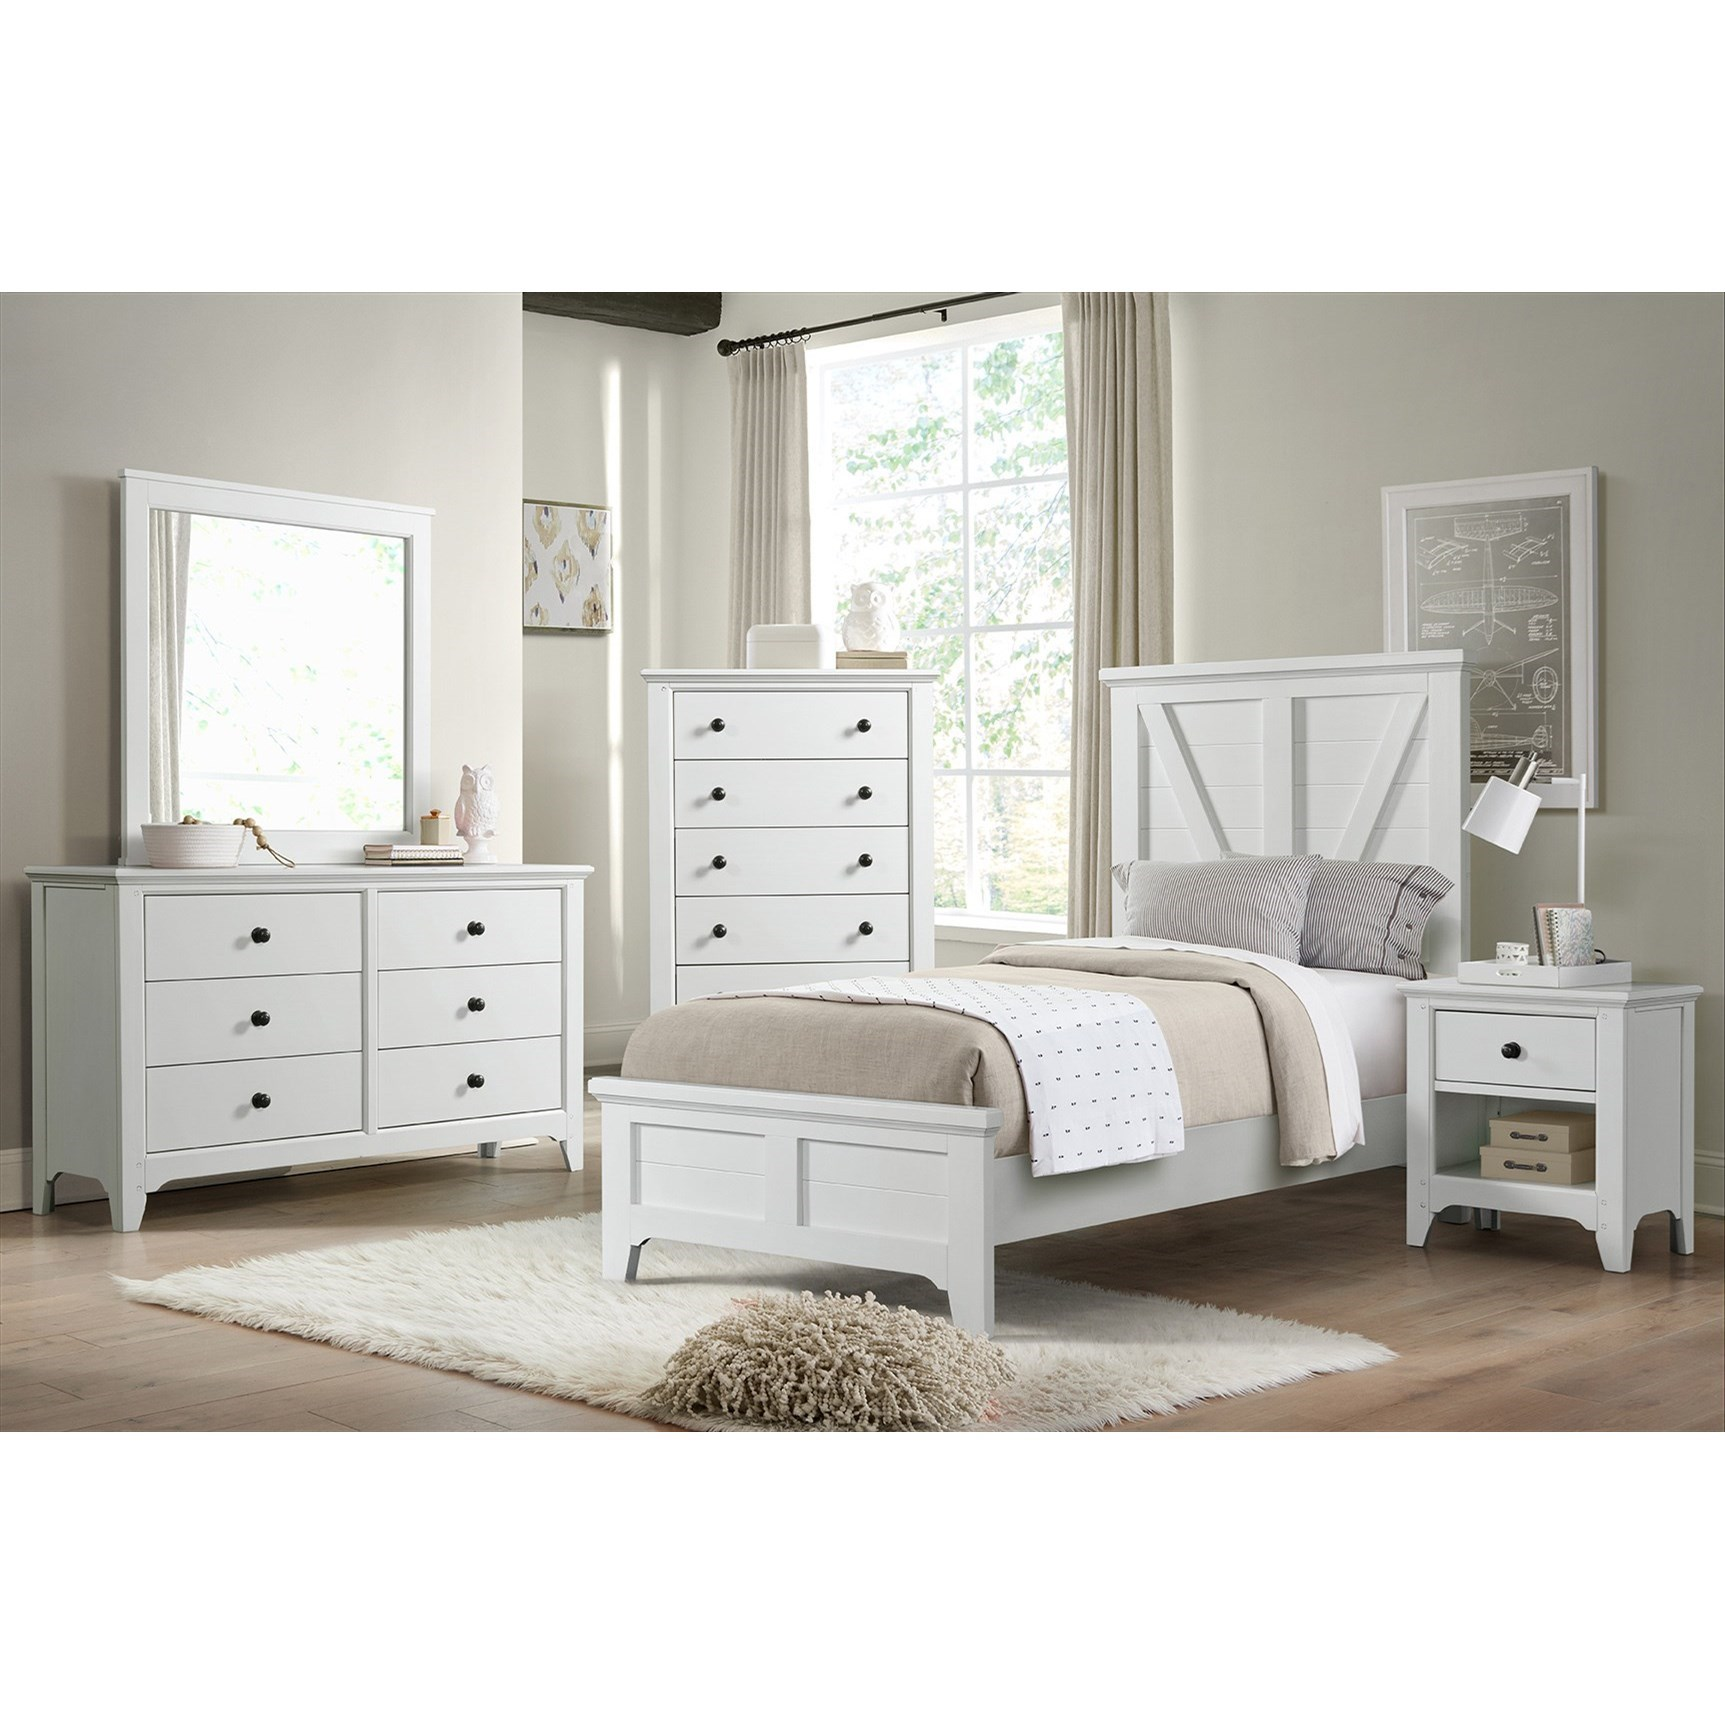 Tahoe Twin Bedroom Group by Sussex Bay at Johnny Janosik